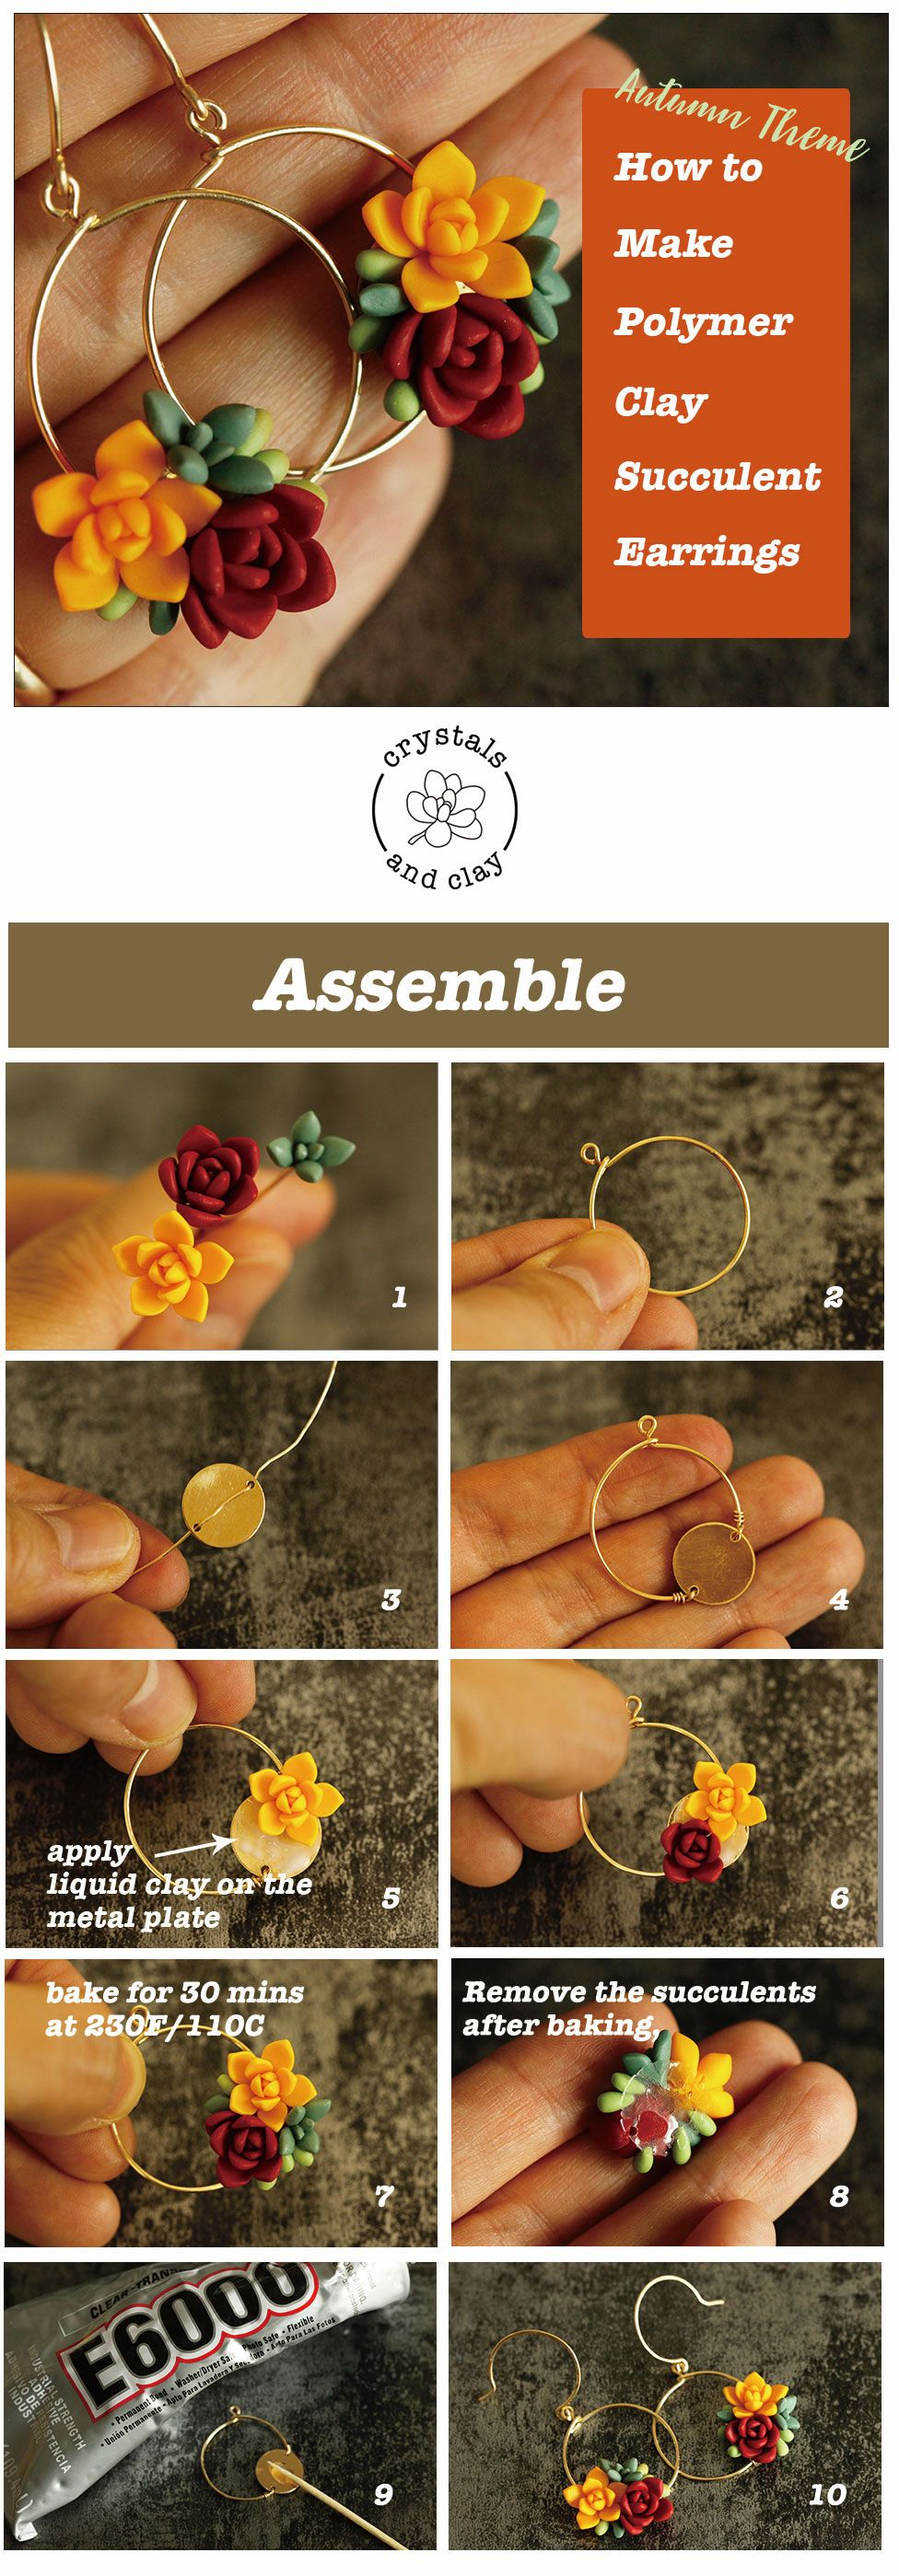 Photo of how to make polymer clay autumn theme succulent earrings